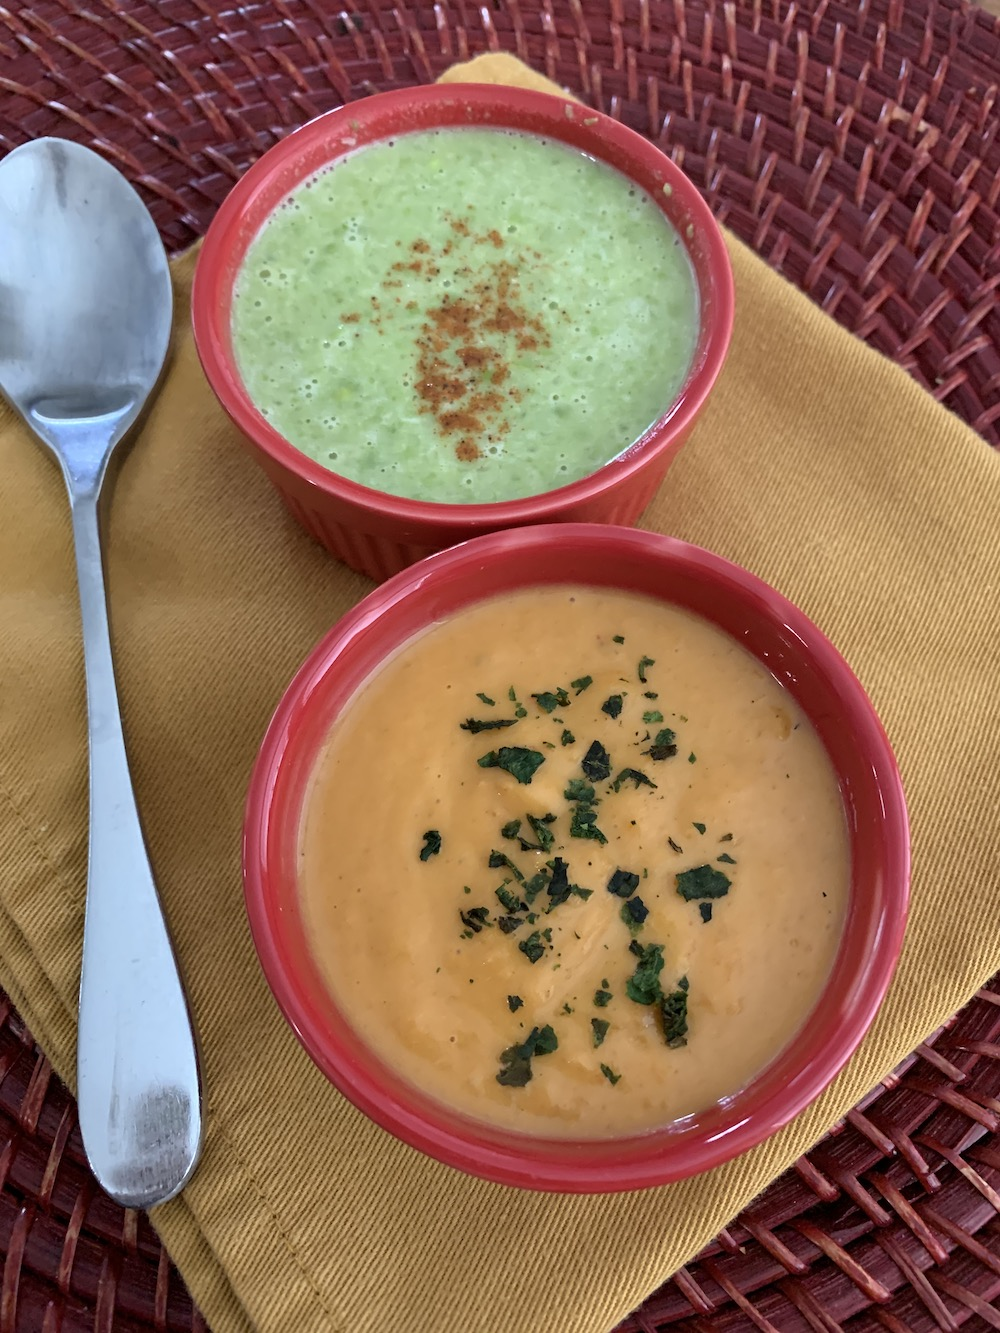 Ruthie says these coconut-milk–based soups stand very well on their own. Thai Green Pea Soup (top) and Thai Sweet Potato Soup | Photo by Ruthie Cohen